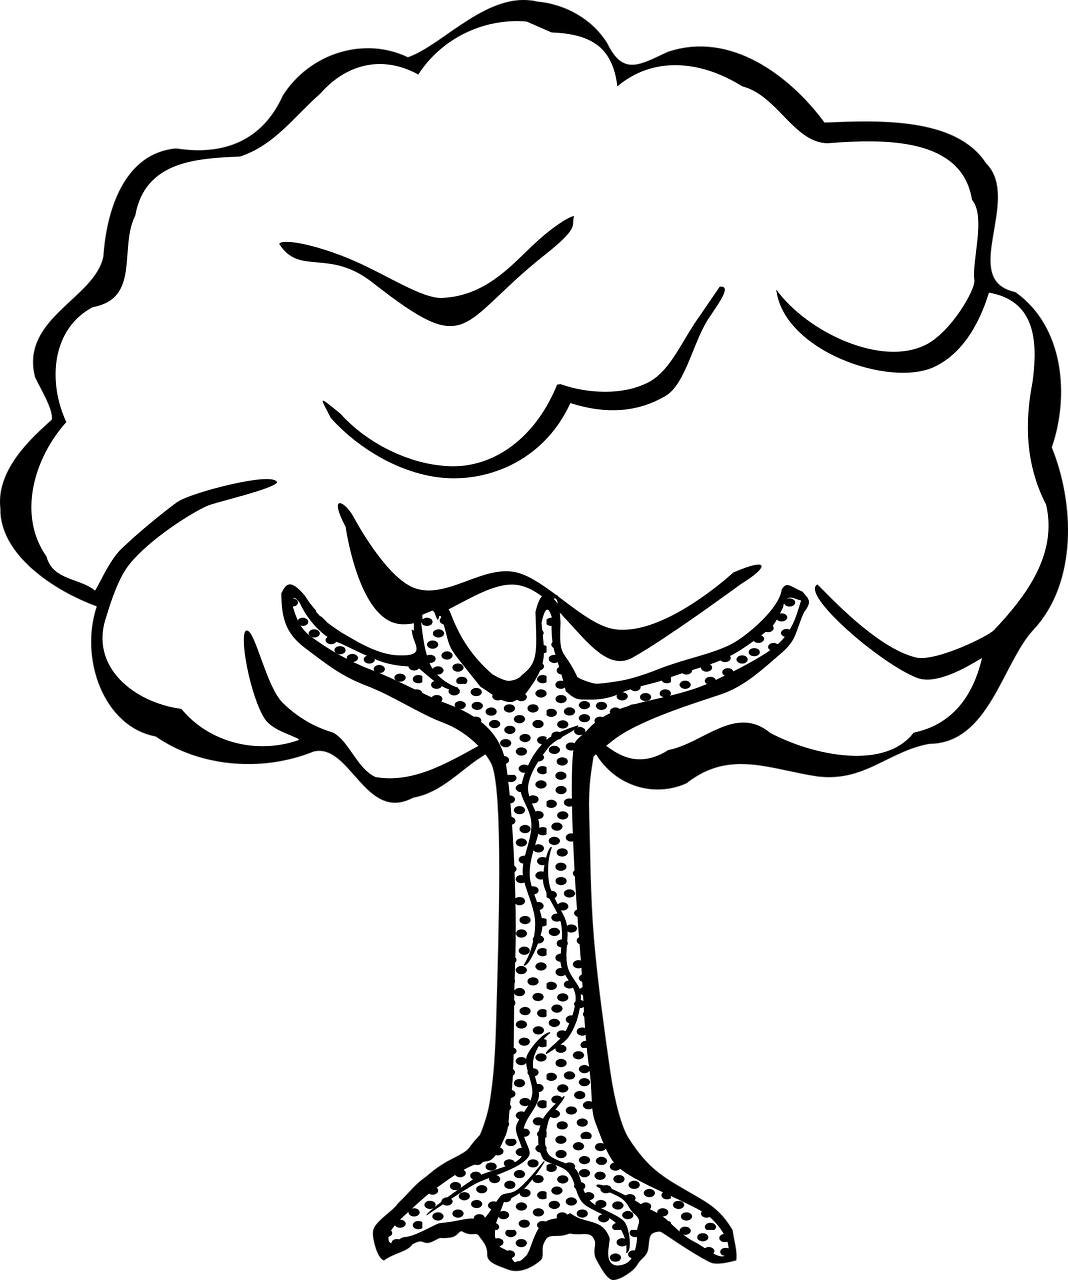 how to draw a tree, coloring